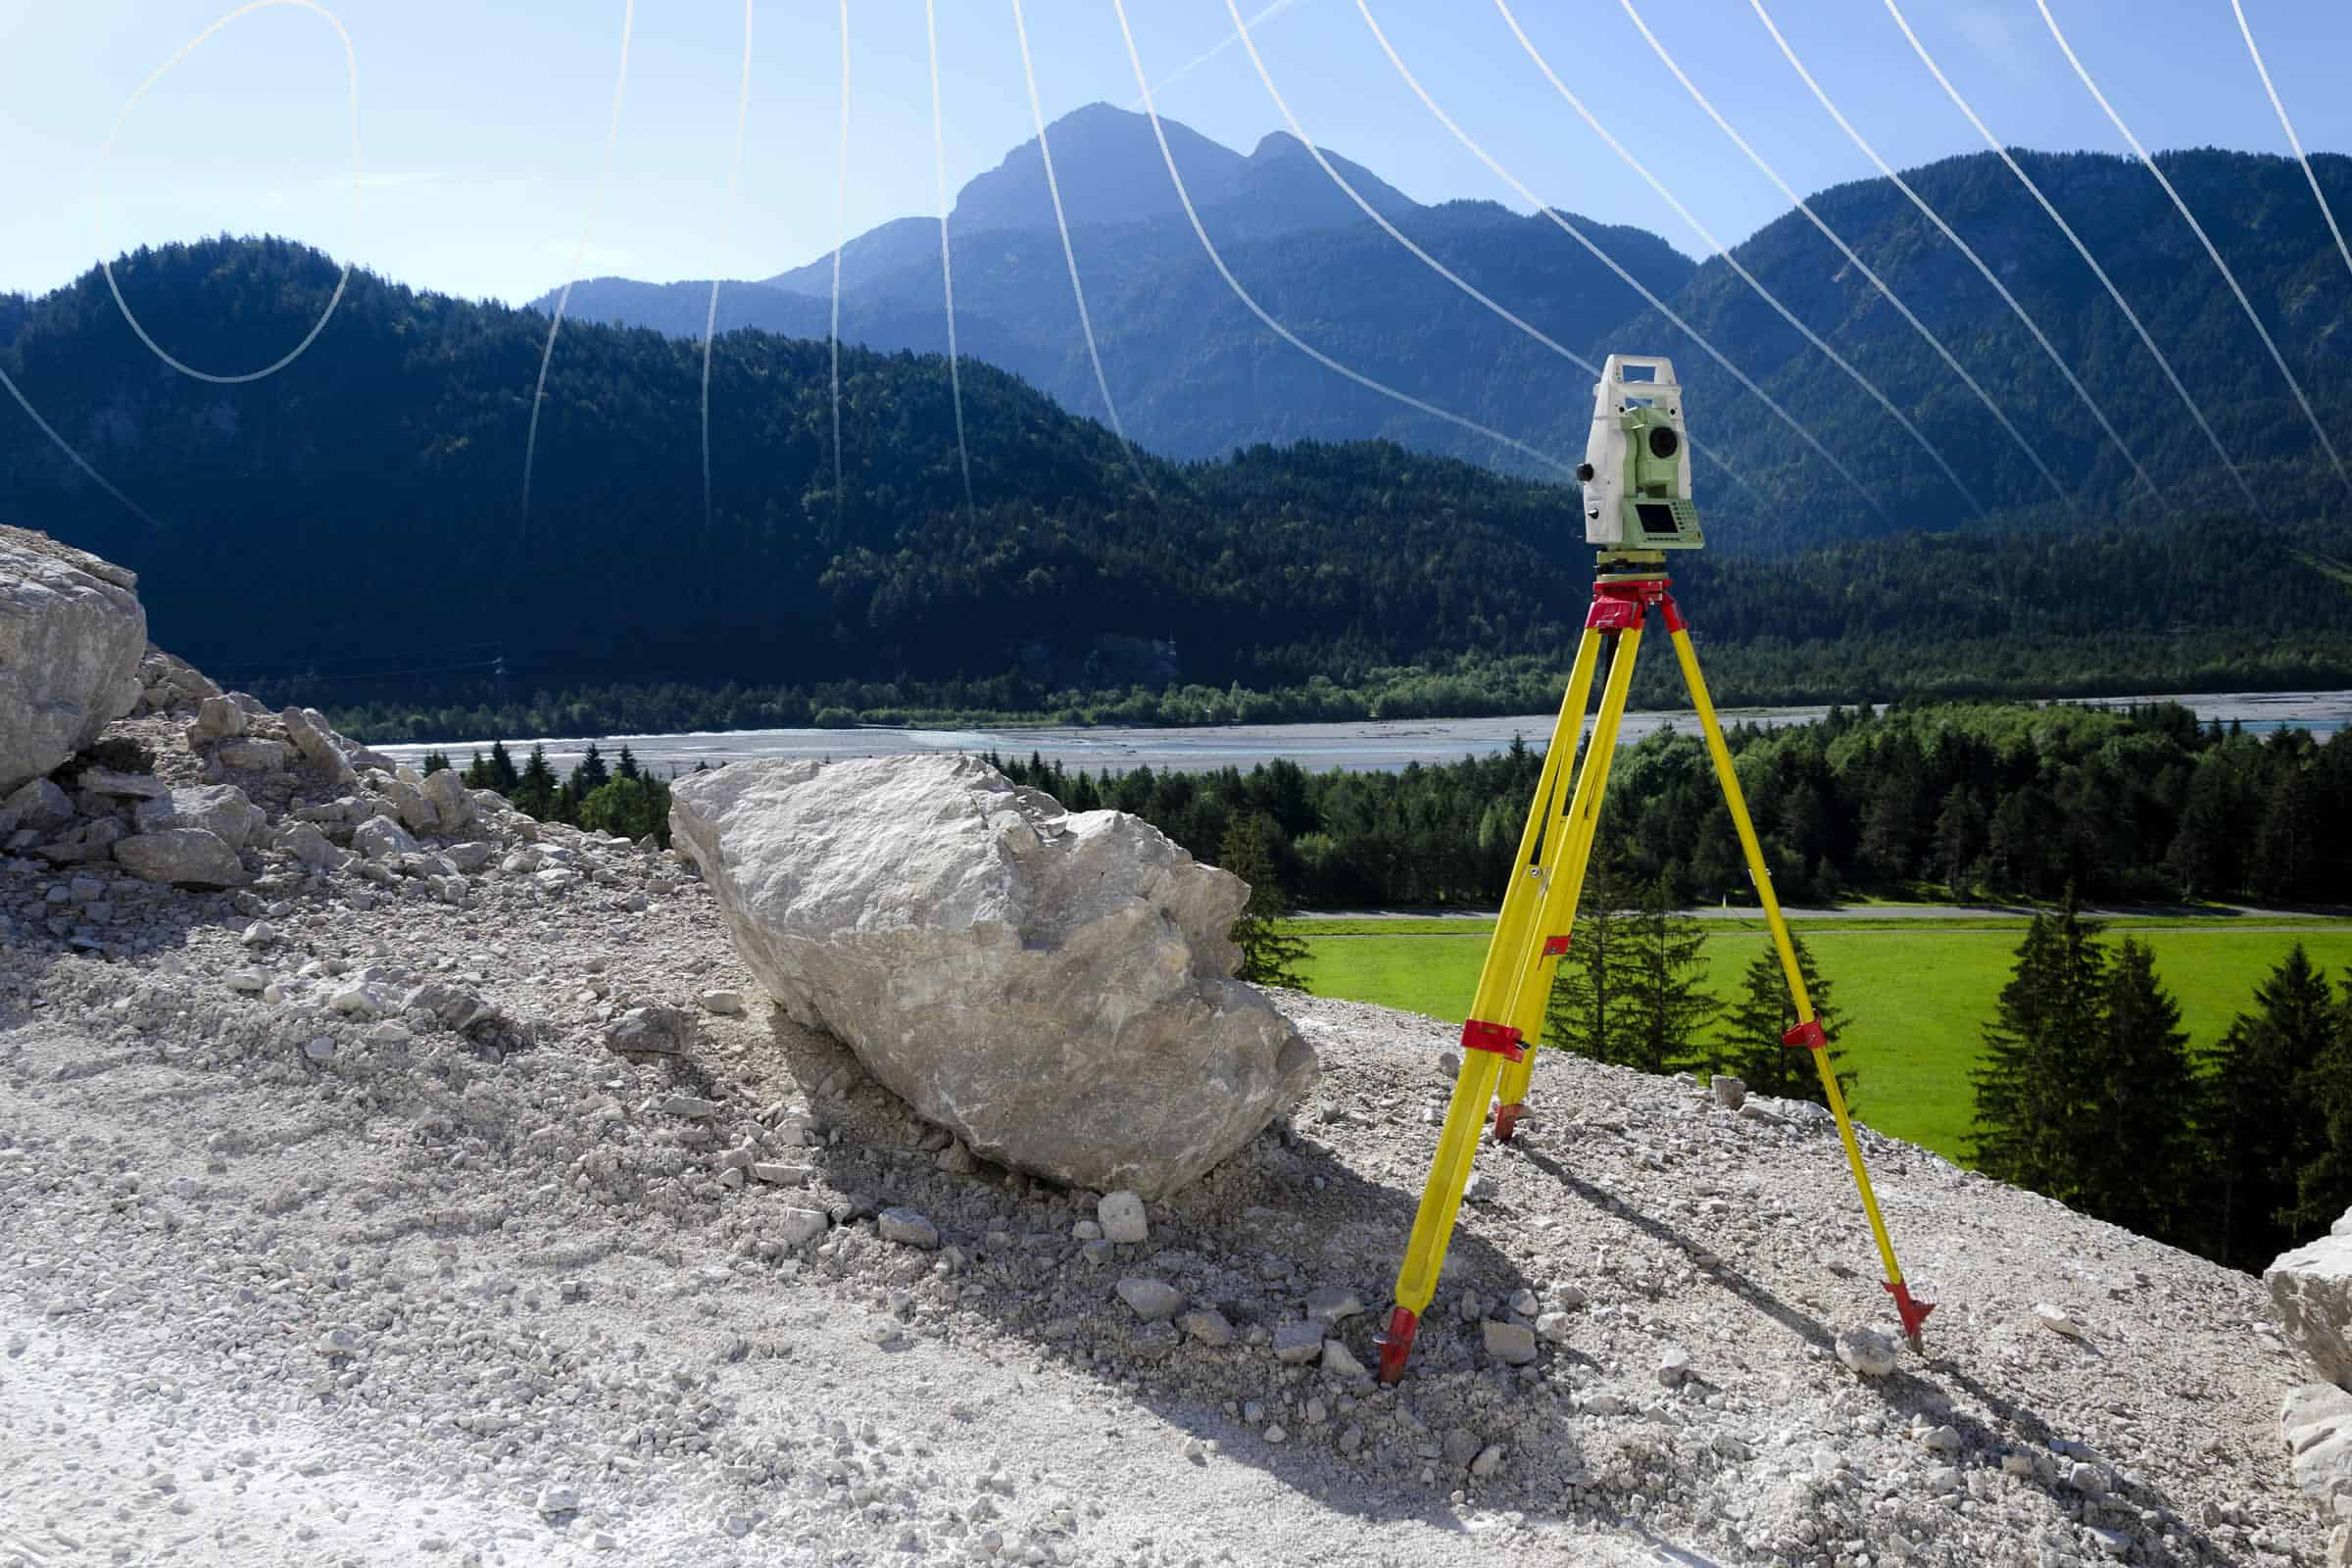 Survey company providing engineering, construction and enviromental surveys throughout Alberta and British Columbia